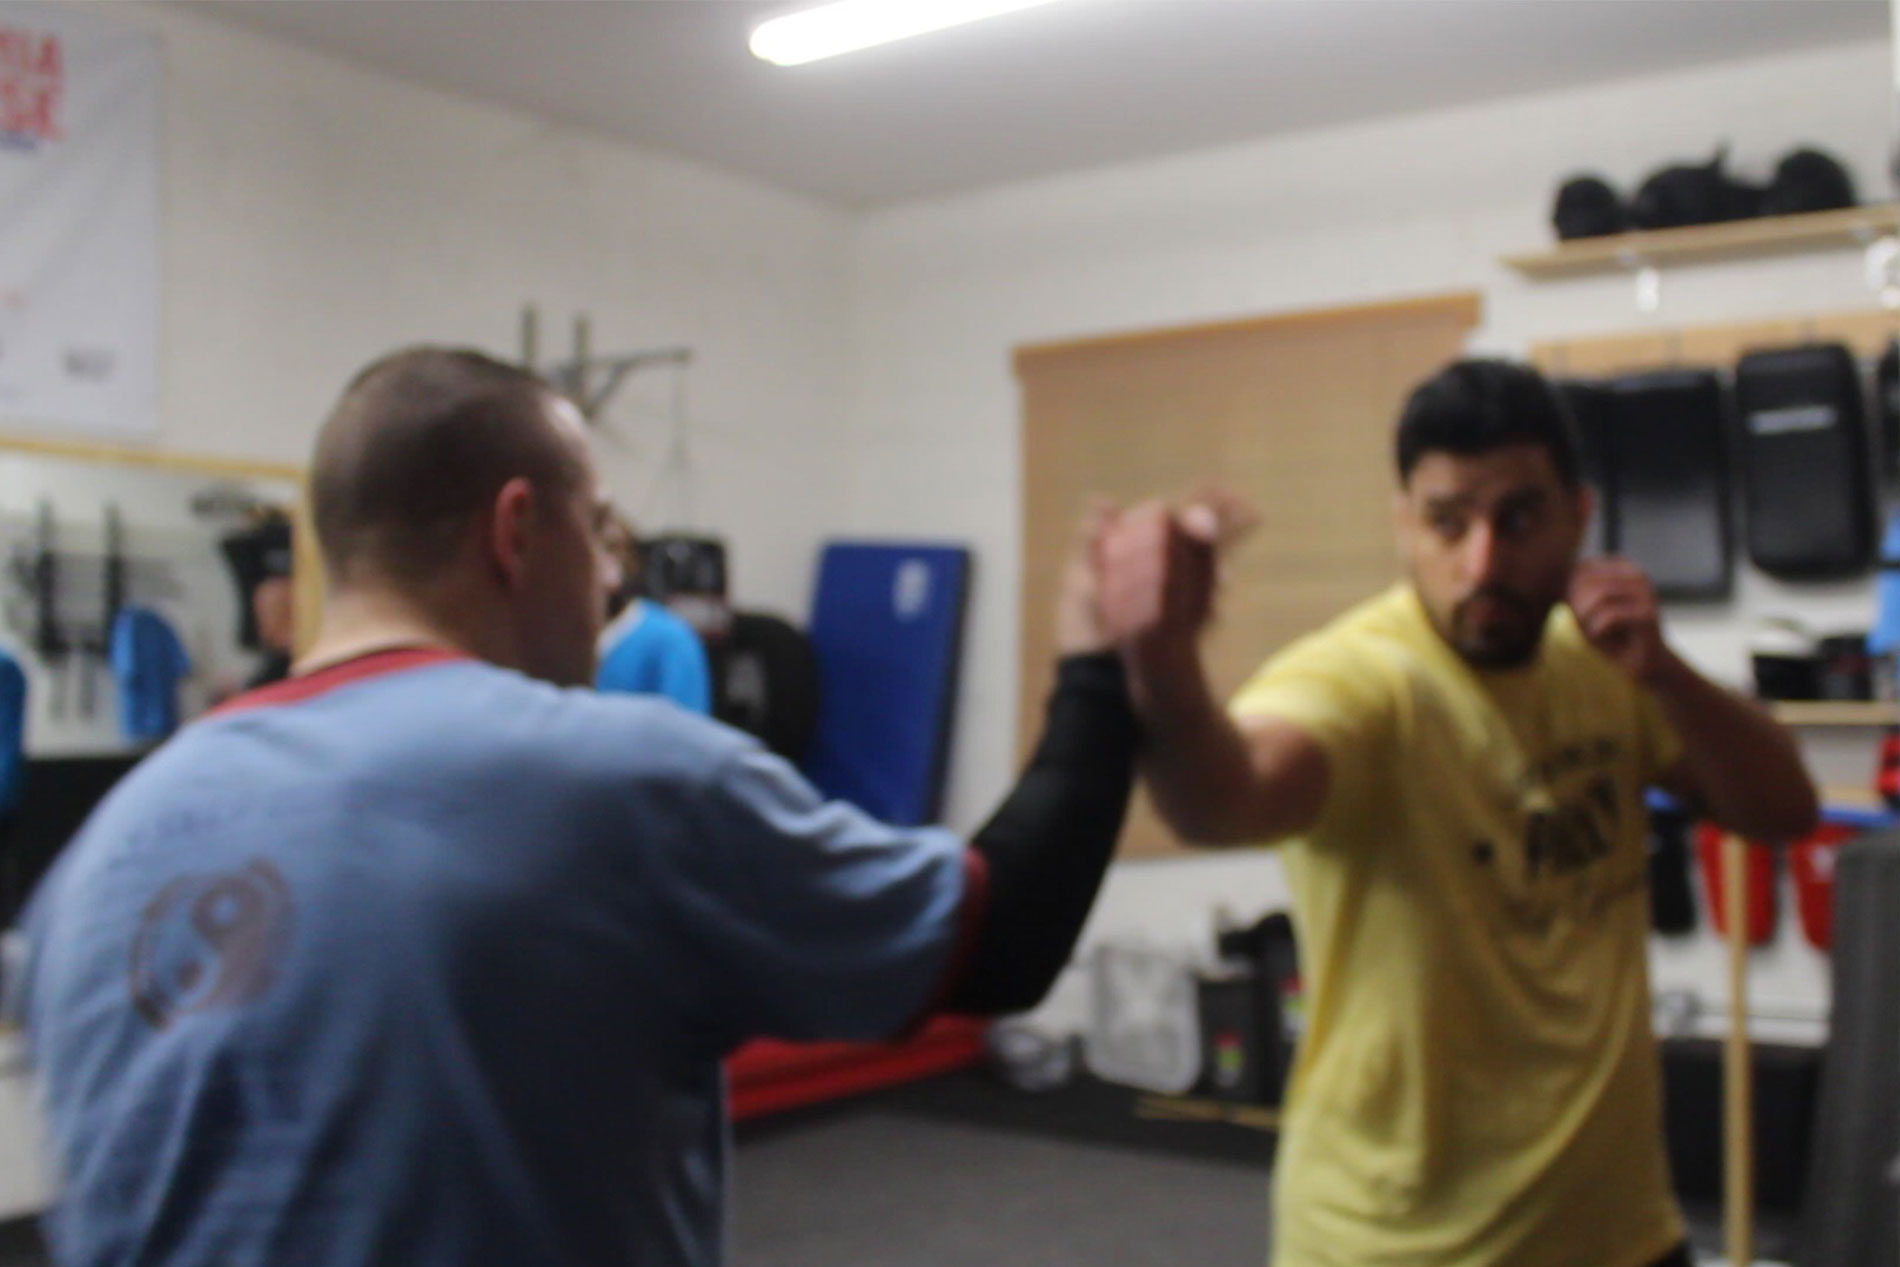 Philadelphia Self Defense Kali Catch Wrestling Jeet Kune Do Philly